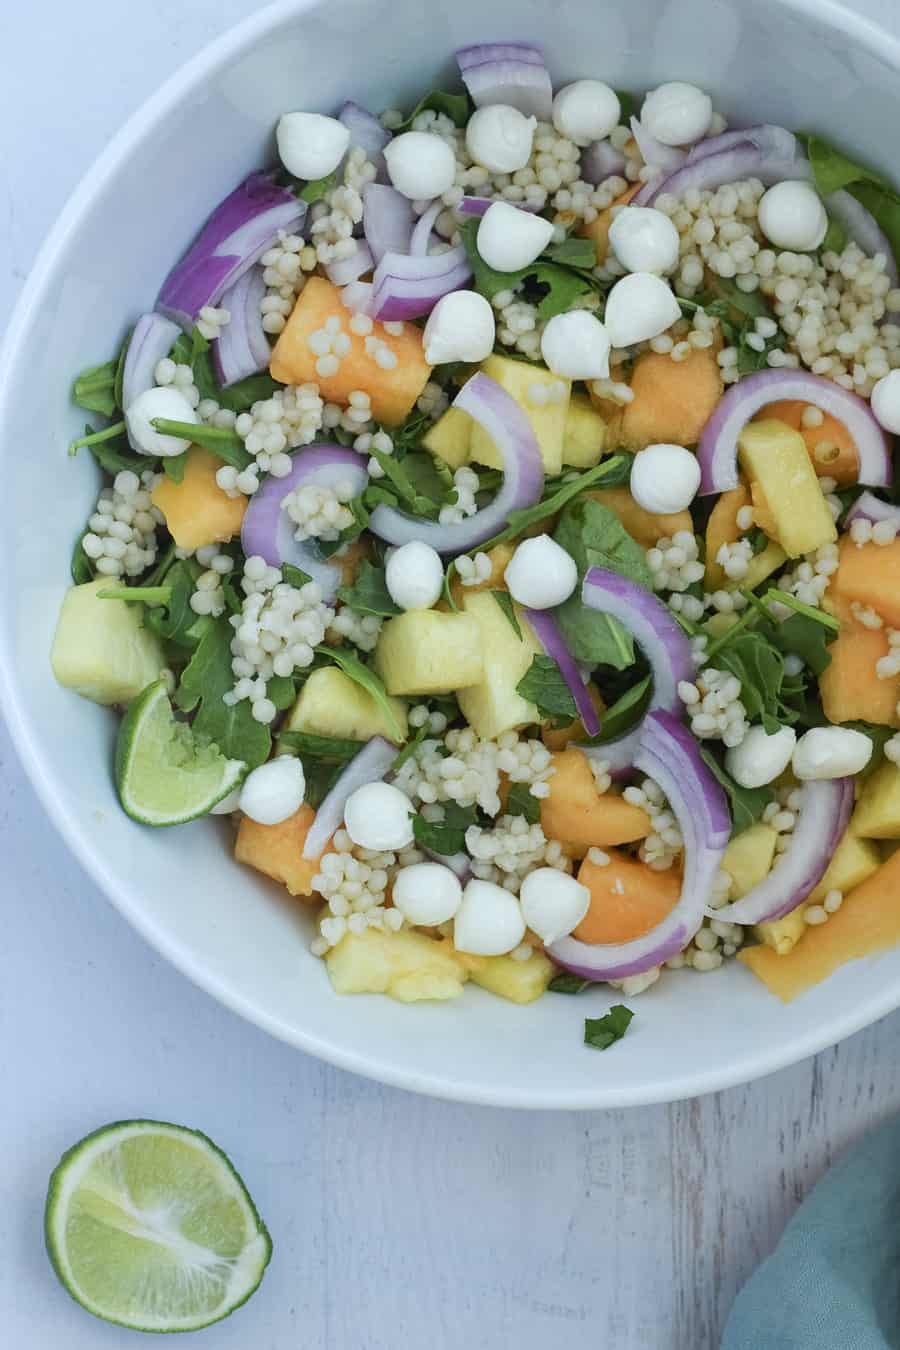 Pineapple salad recipe with mozzaralla, red onion and cous cous